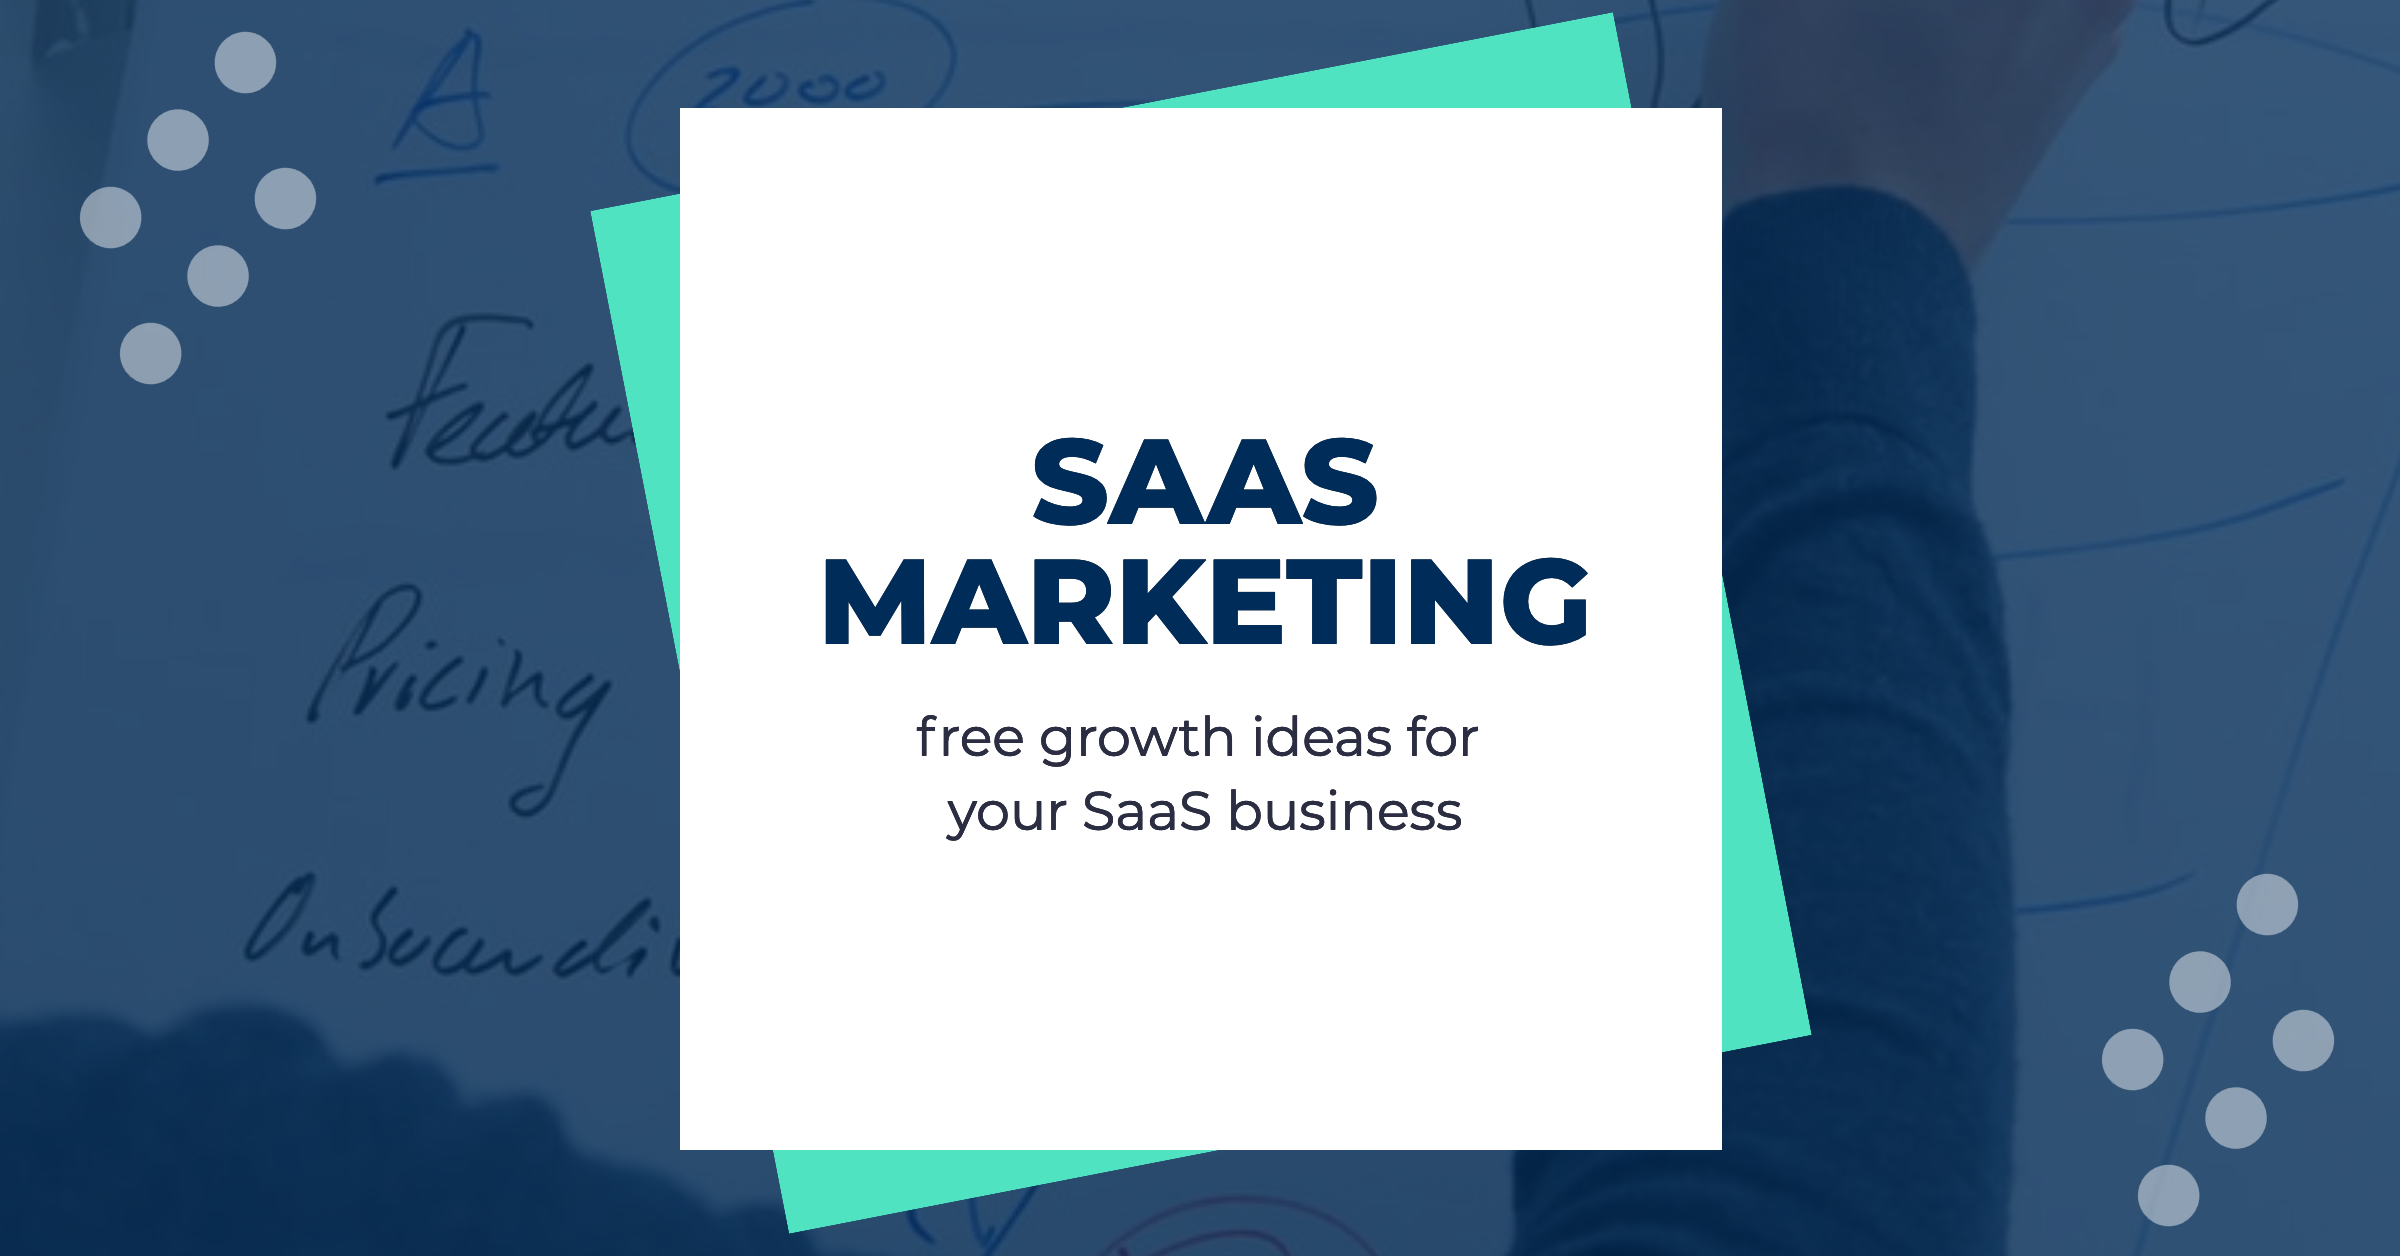 SaaS Growth ideas - Nordhaven Digital Marketing Agency